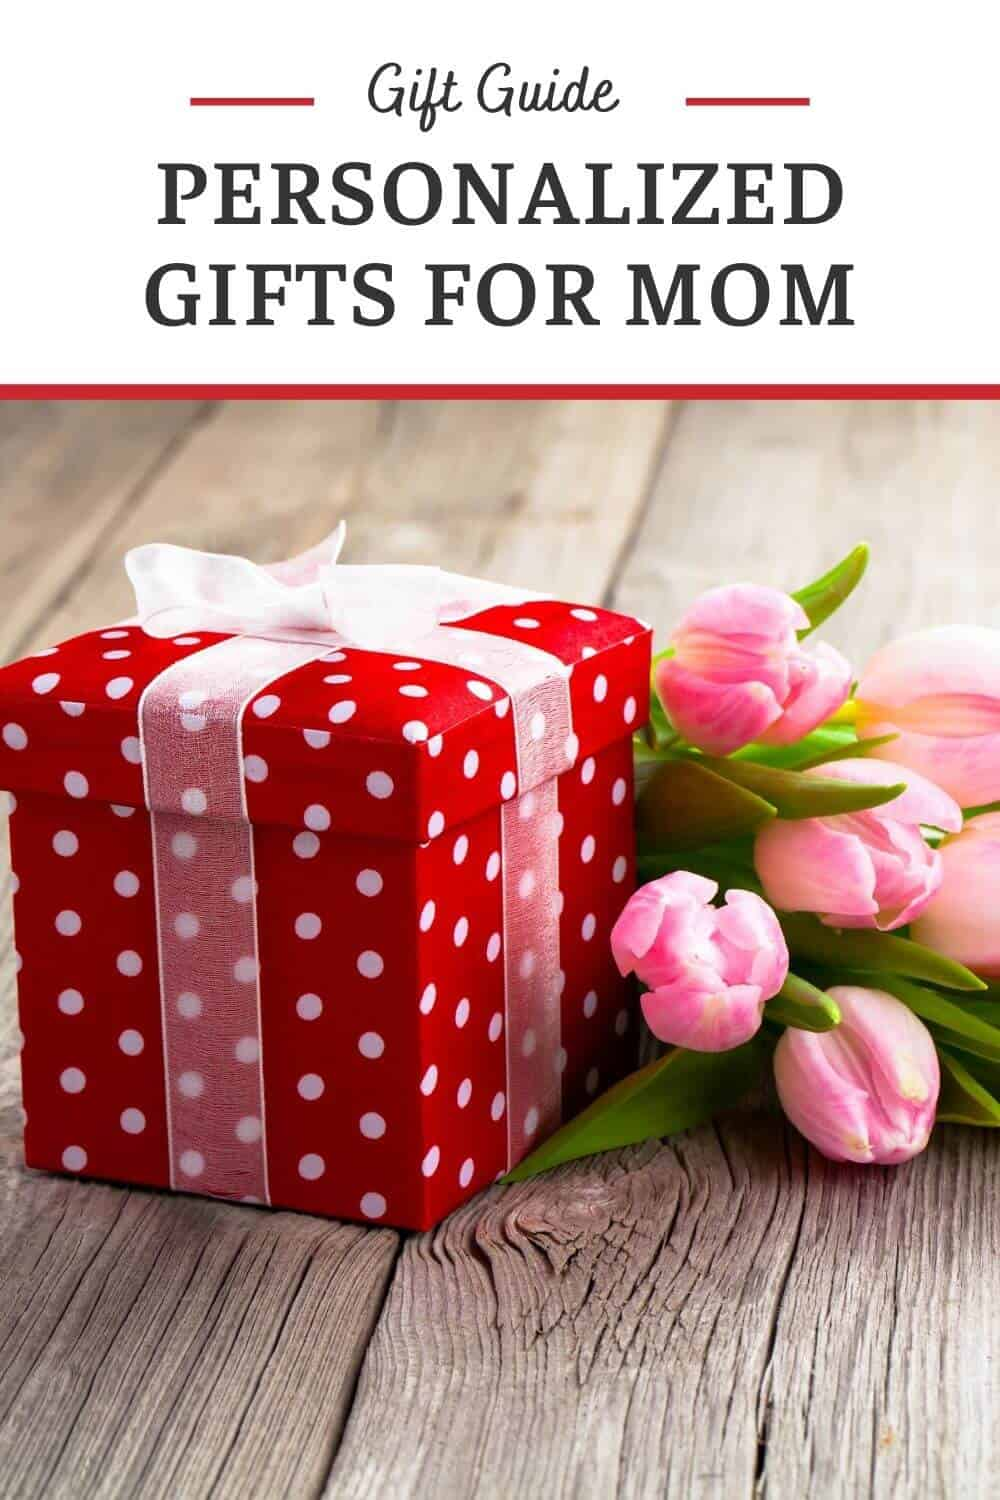 Personalized Gifts for Mom - Keepsake Gift Ideas For Moms of All Ages